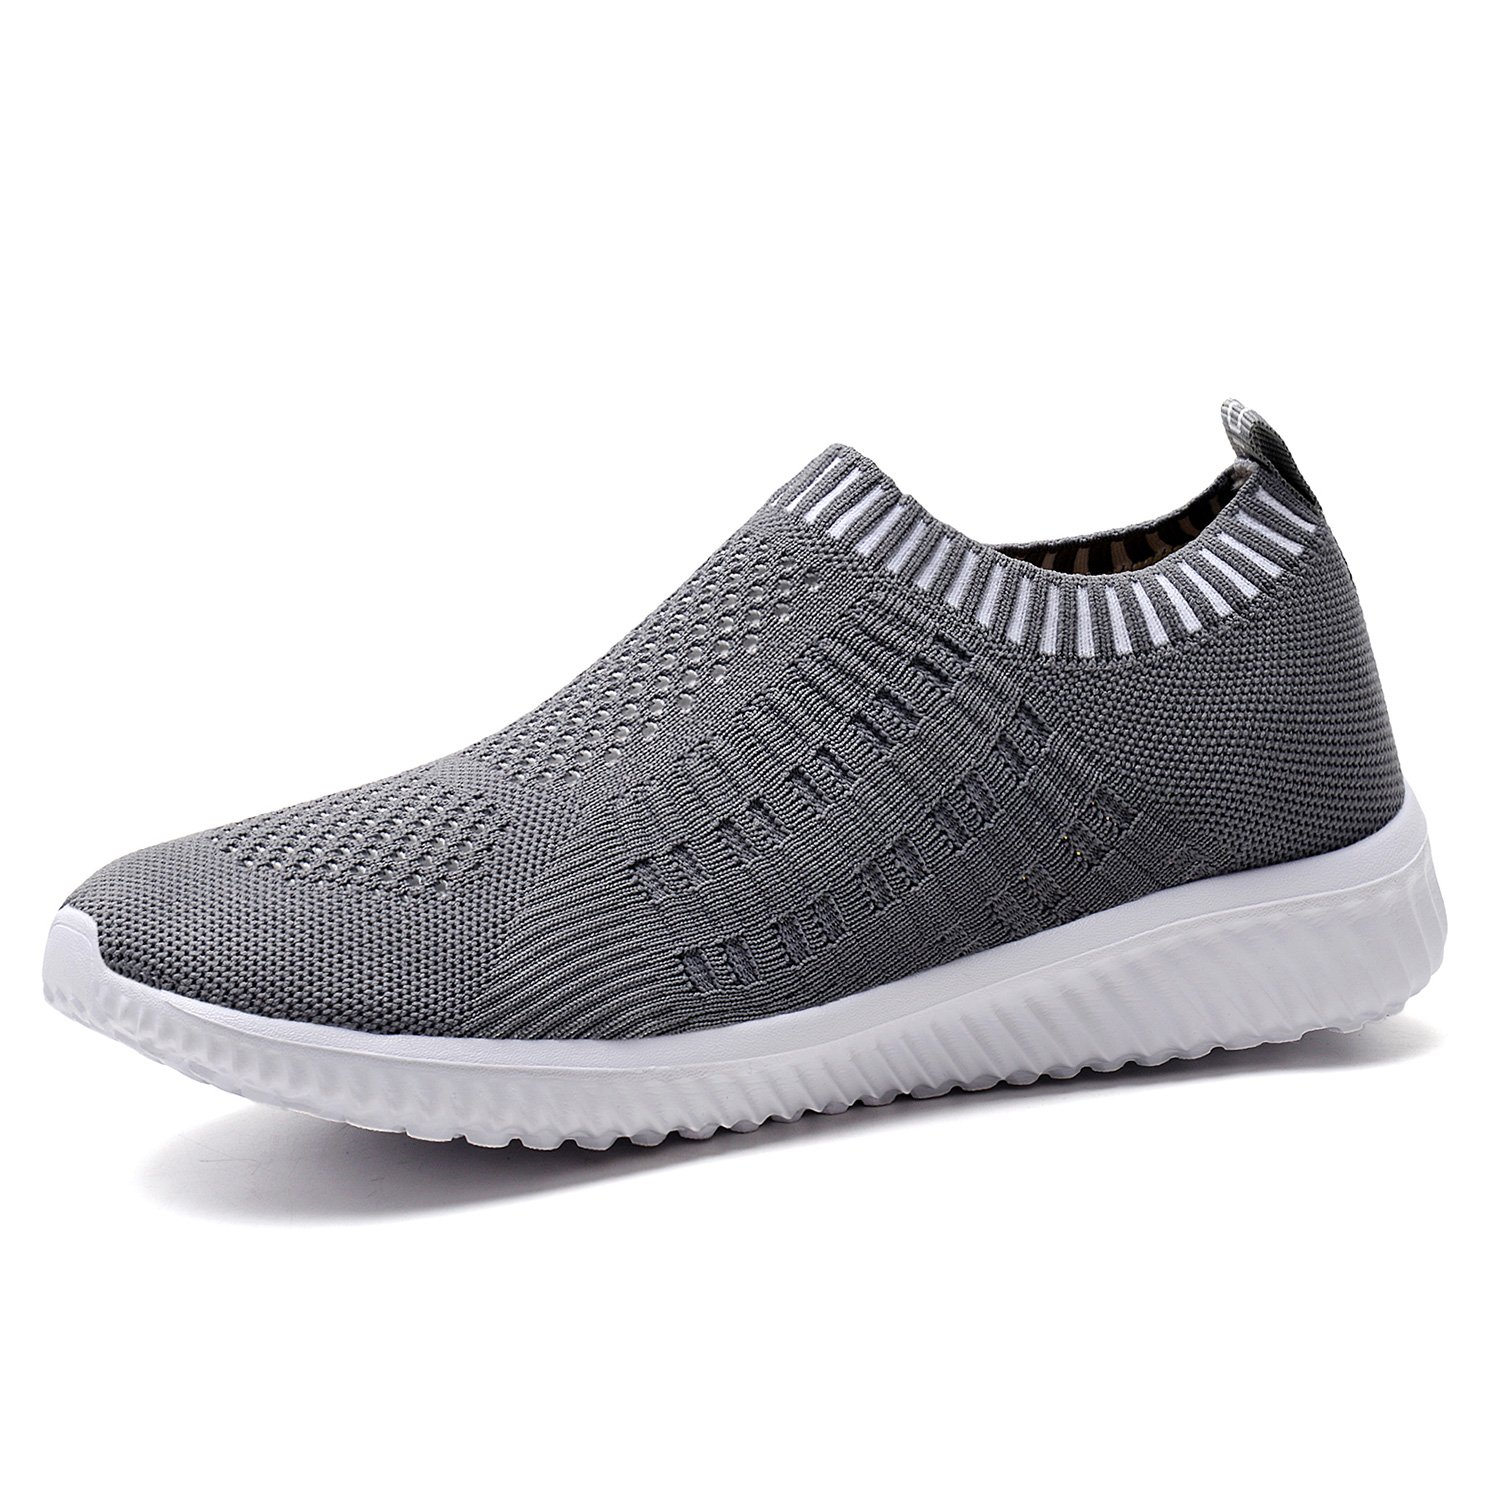 TIOSEBON Women's Athletic Shoes Casual Mesh Walking Sneakers B076P2P3GX - Breathable Running Shoes B076P2P3GX Sneakers 6.5 M US|6701 Deep Gray 433f96